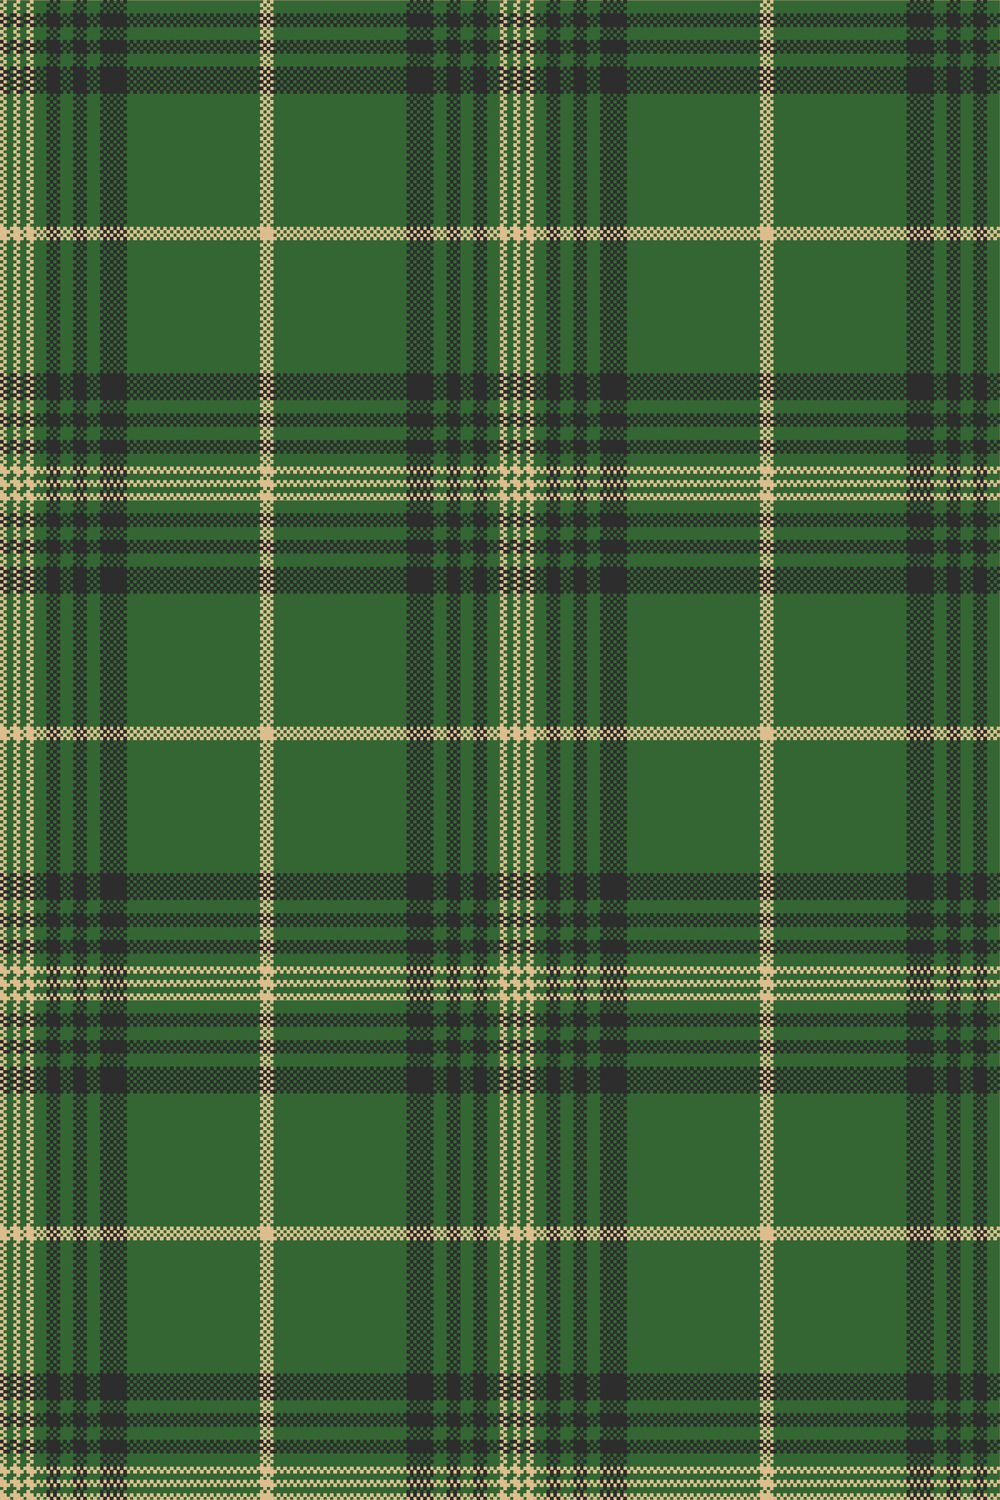 Tartan plaid wallpaper patterns. Scottish tartan plaid kilts. Scrapbooking paper patterns backgrounds. Fabric patterns texture design. Textile pattern classic fabrics green color. Seamless pattern texture. Seamless vector patterns. Stock vector illustrations.